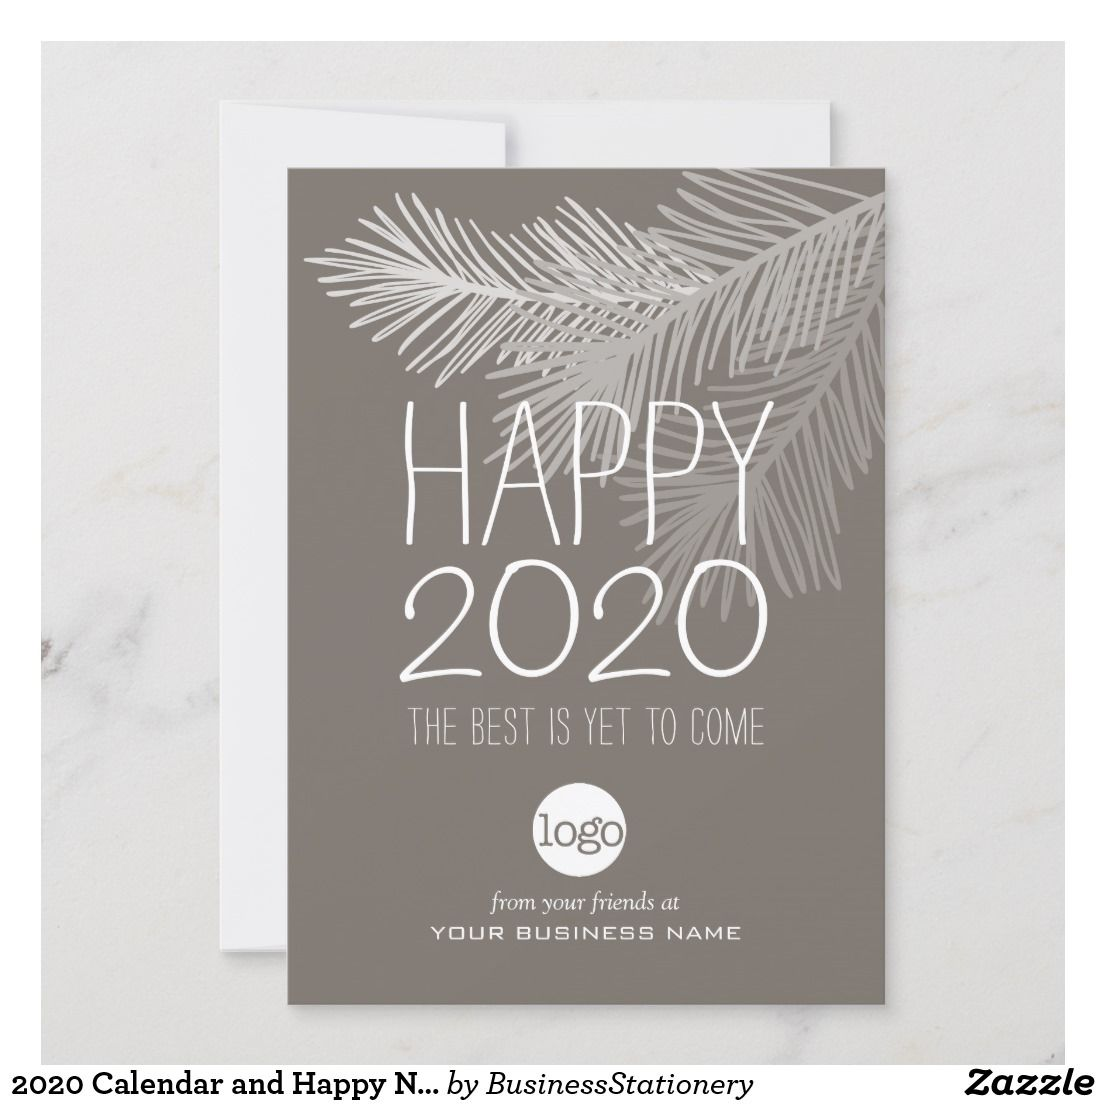 2021 Calendar And Happy New Year Add Business Logo Holiday Card Zazzle Com Business Greeting Cards Company Holiday Cards Corporate Christmas Cards